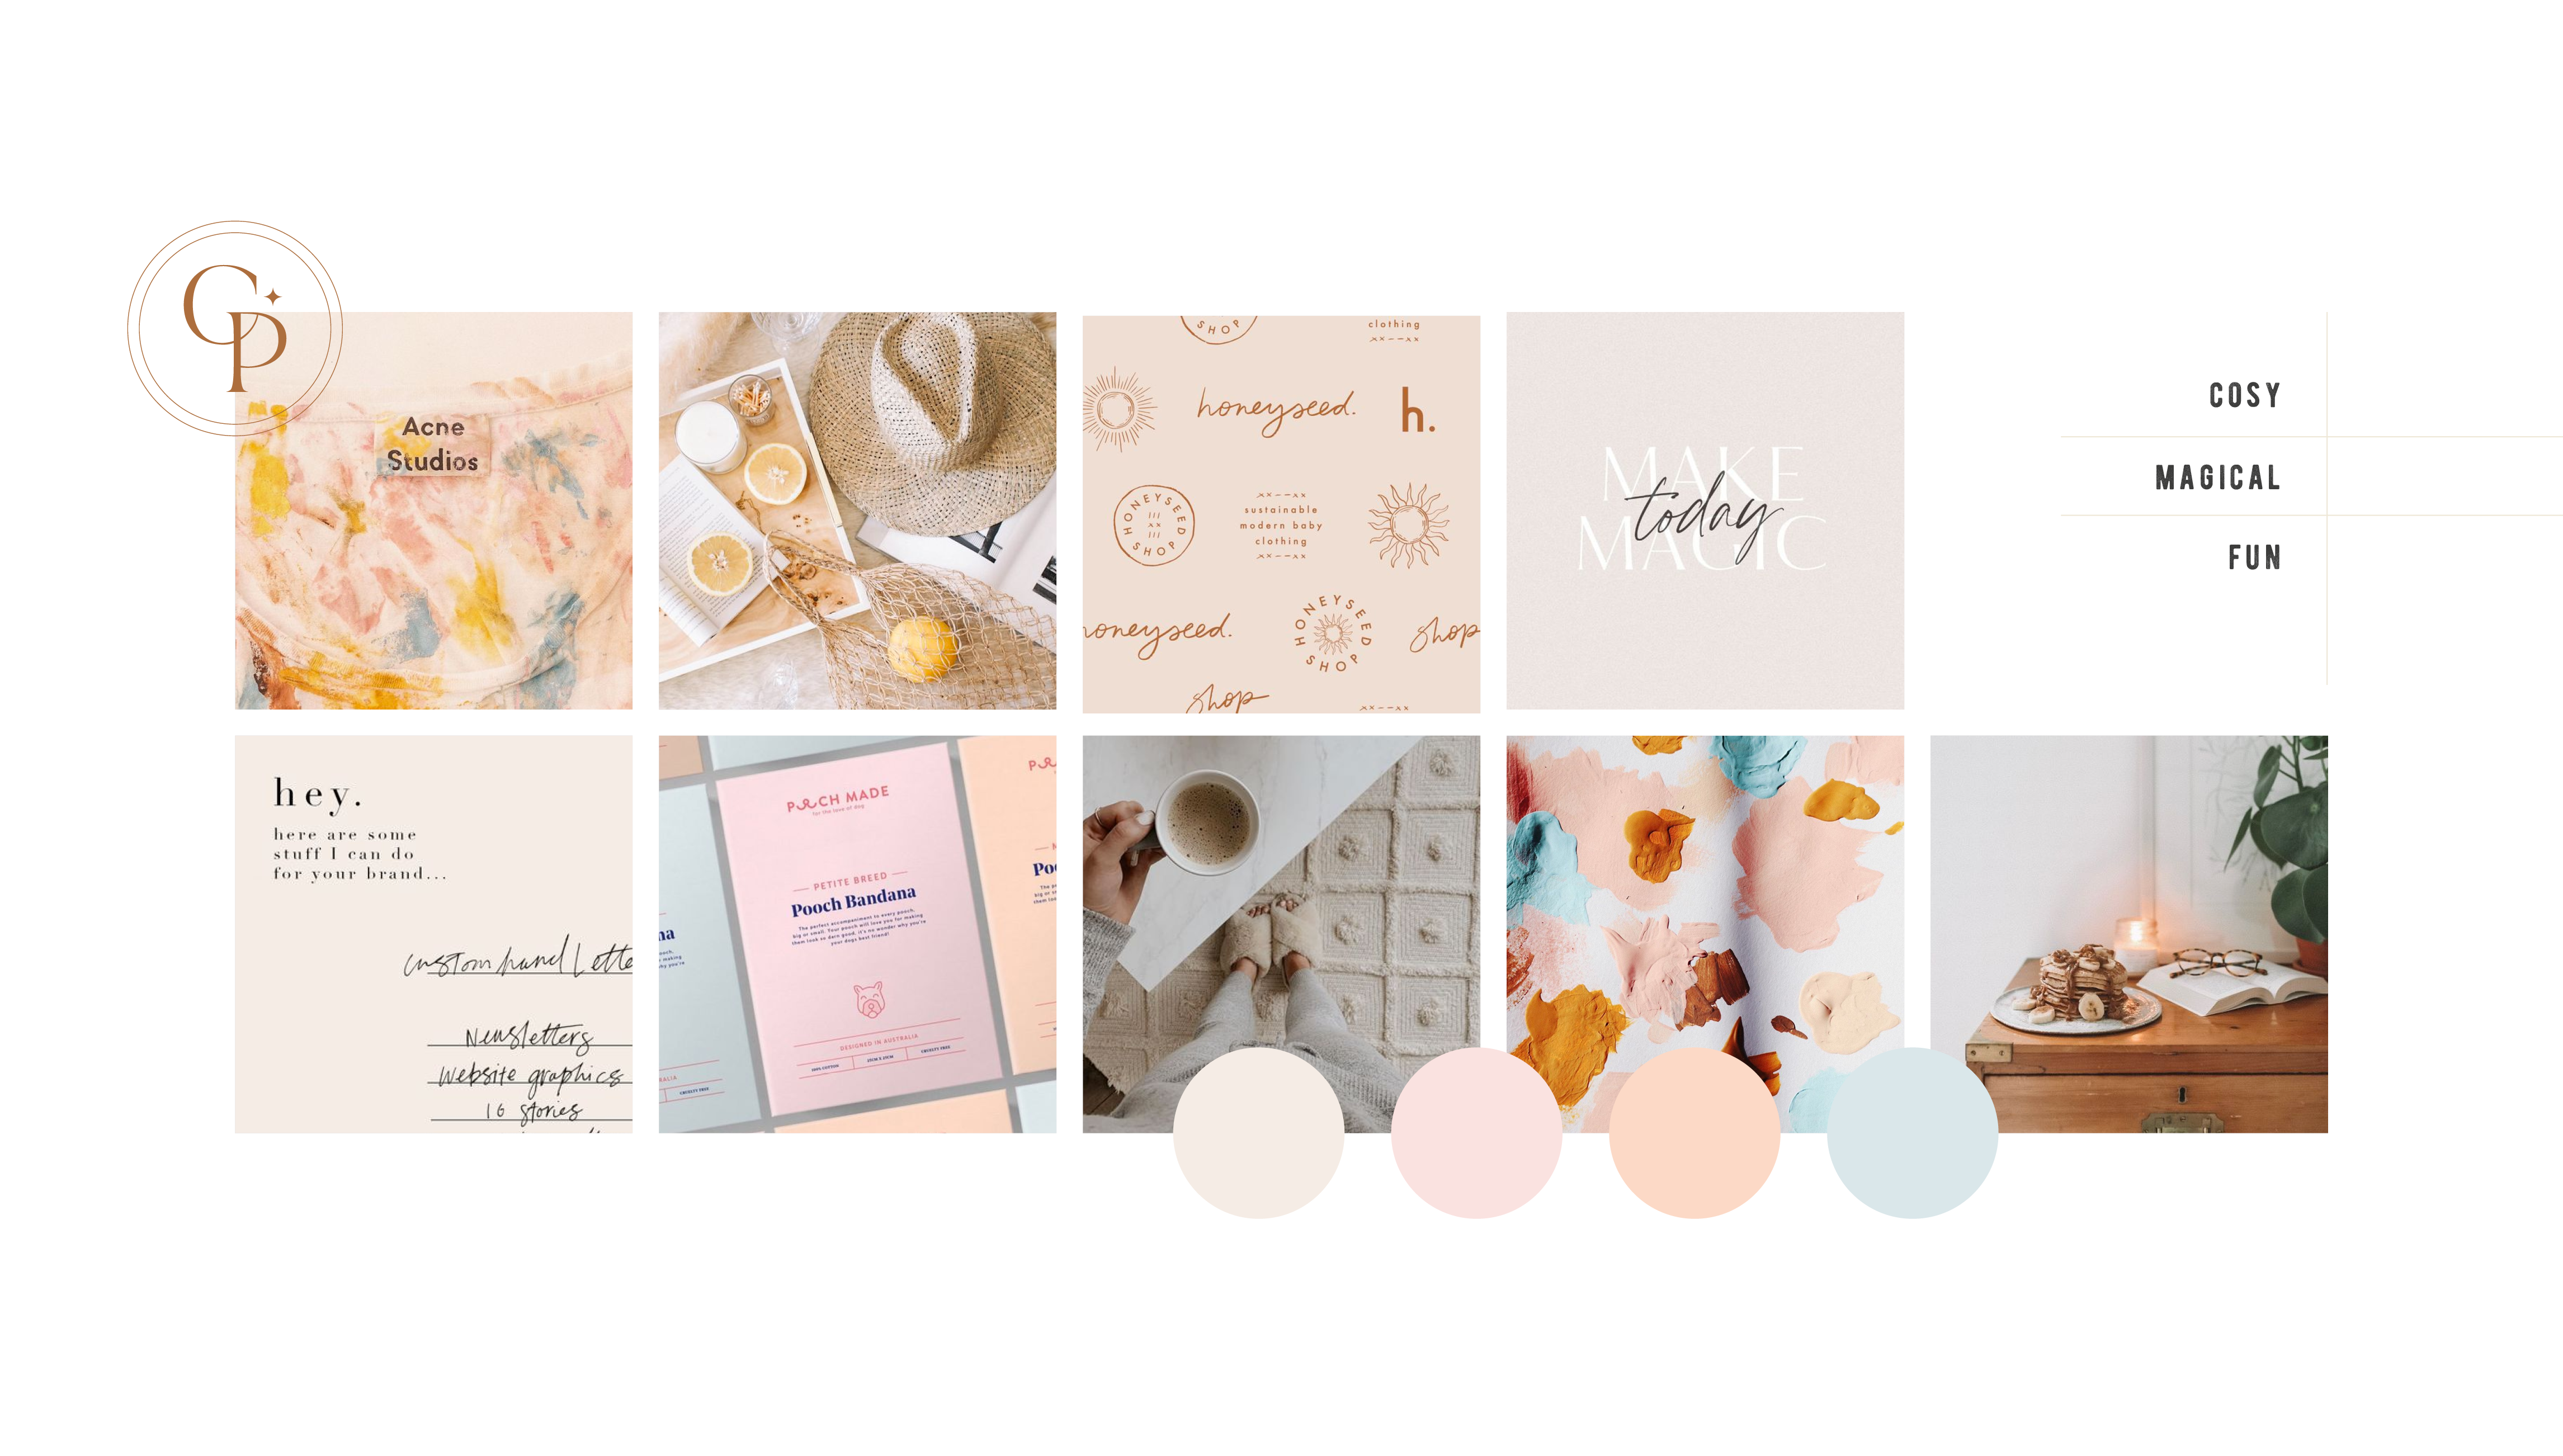 Moodboard for Creative Plan, providing paperless planning products with an analogue feel - designed by Wiltshire-based graphic designer, Kaye Huett